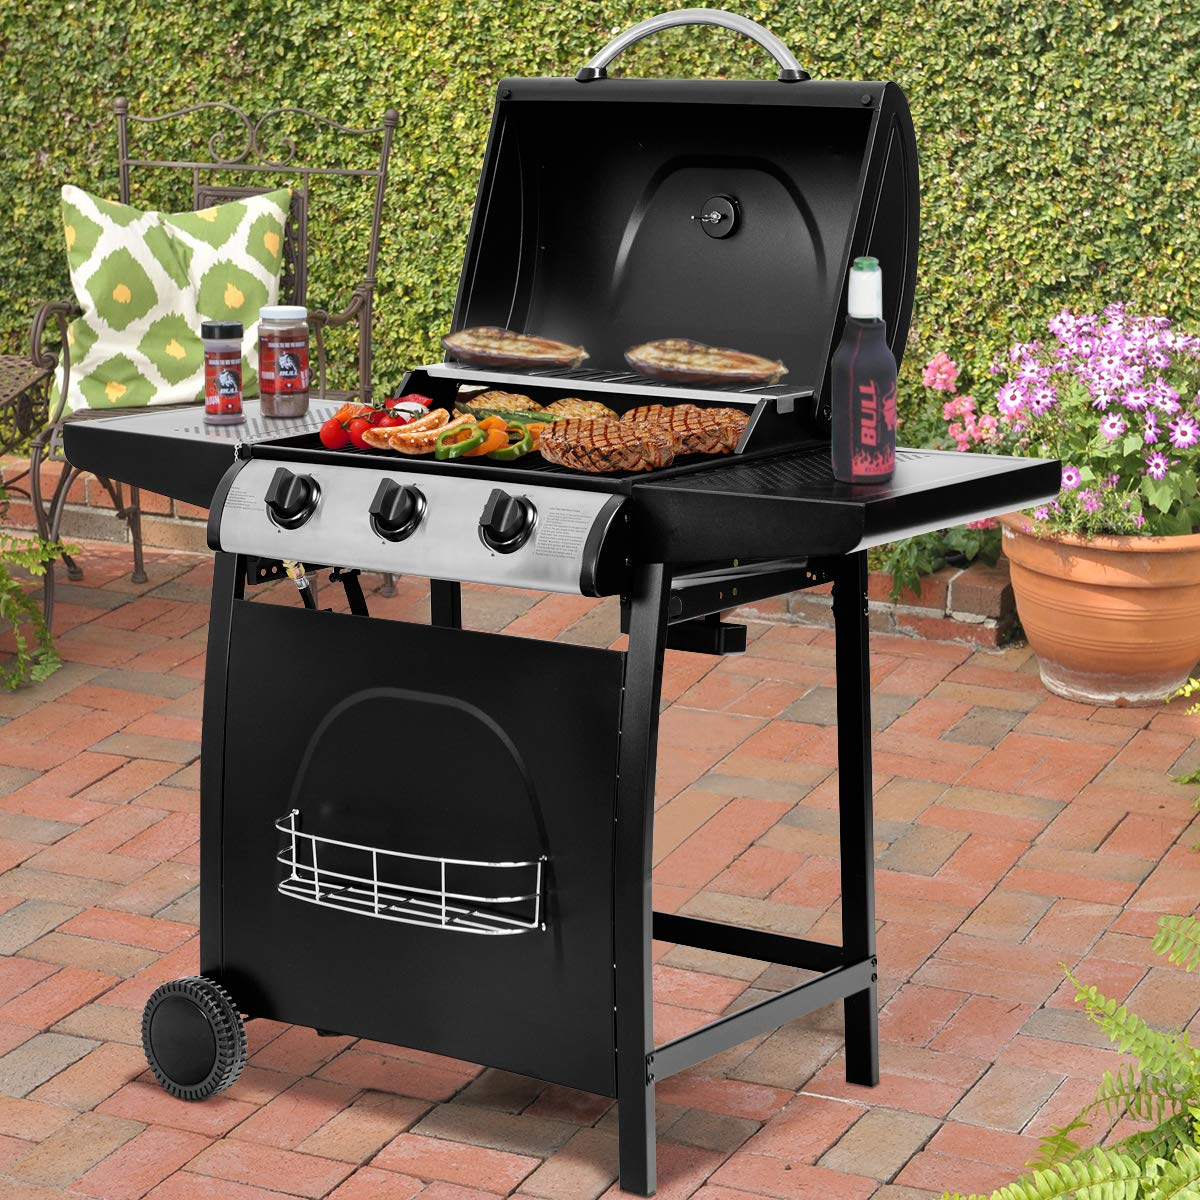 Giantex BBQ Propane Gas Grill Cart 3-Burner Outdoor Camping Cooking, 30000BTU with Hose Valve Side Table Auto Ignition, Best 430 Stainless Steel Gas Grills W Thermometer Wheels, Black Black